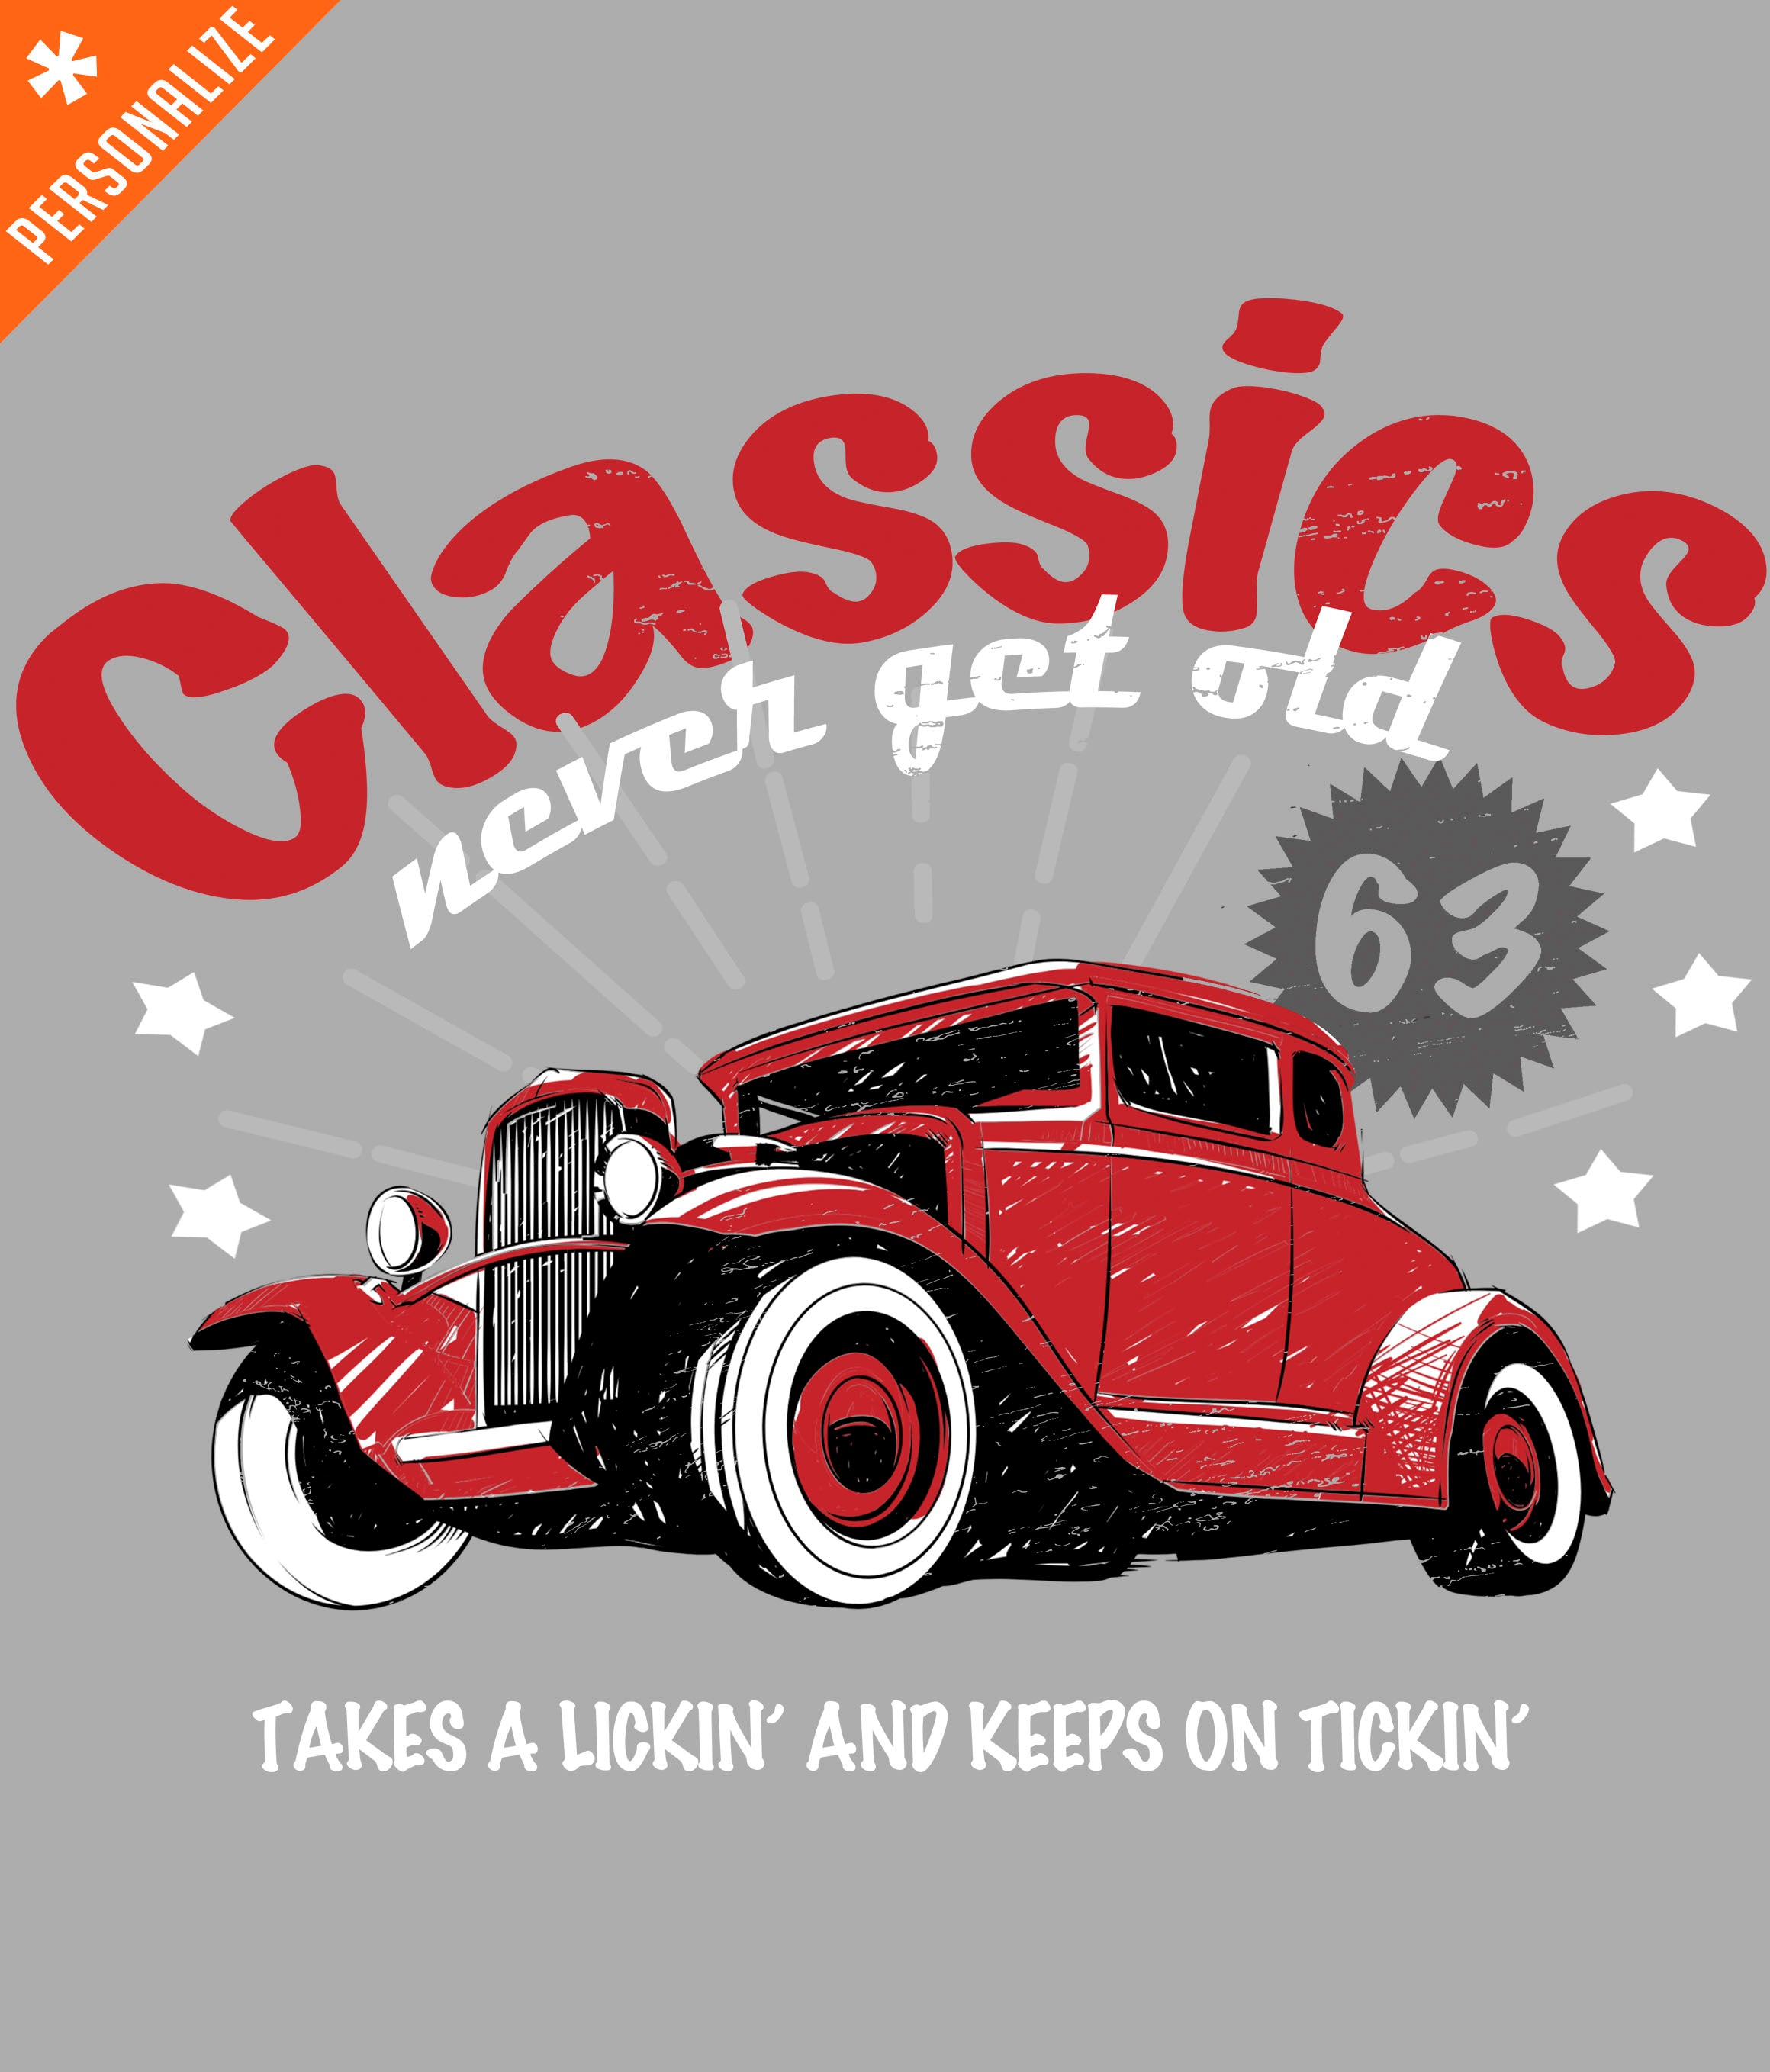 PERSONALIZED CLASSIC CAR T-SHIRT DESIGN CLOSEUP